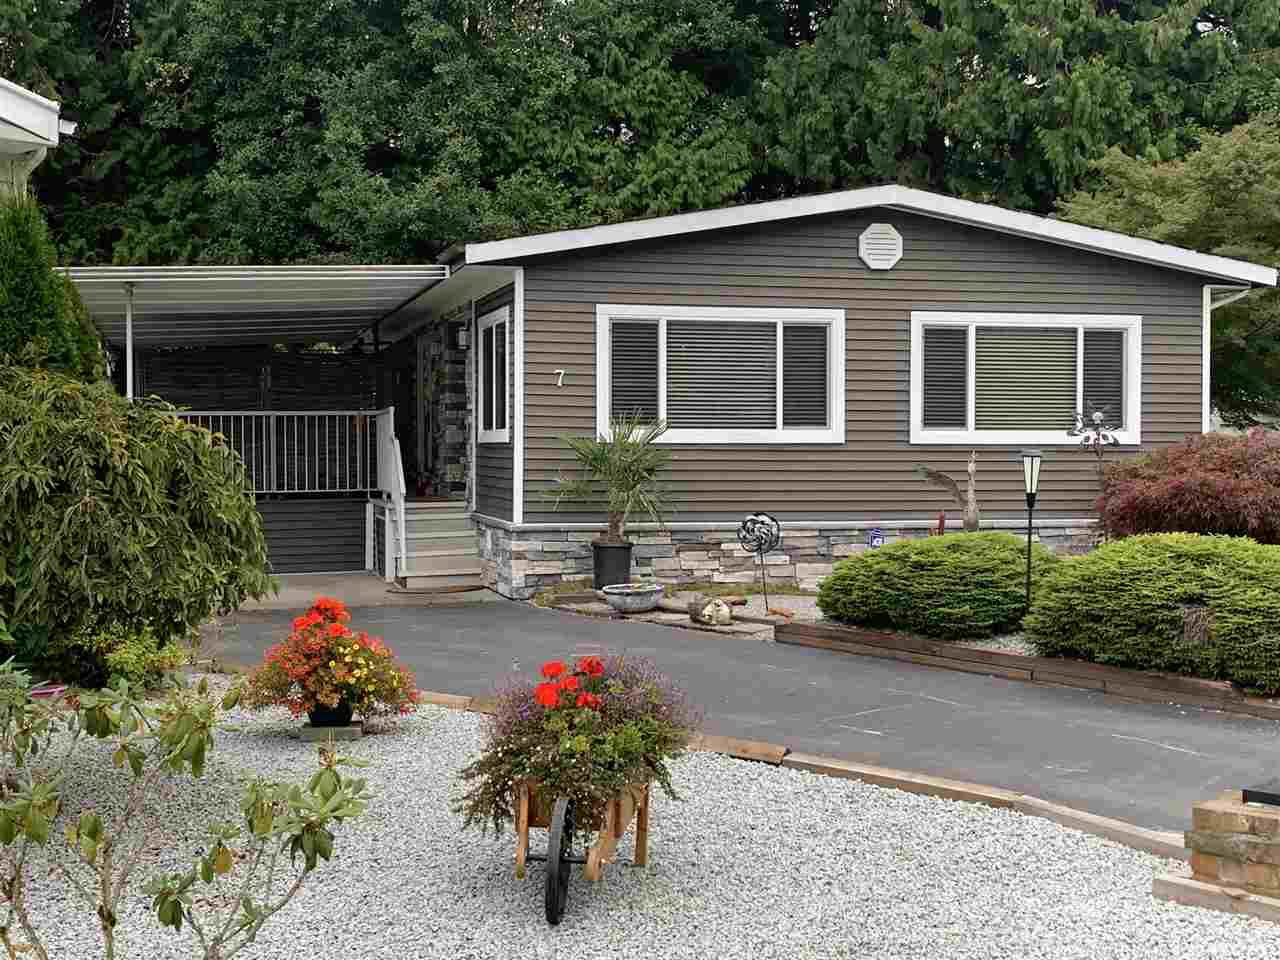 """Main Photo: 7 2315 198 Street in Langley: Brookswood Langley Manufactured Home for sale in """"Dear Creek Estates"""" : MLS®# R2414714"""